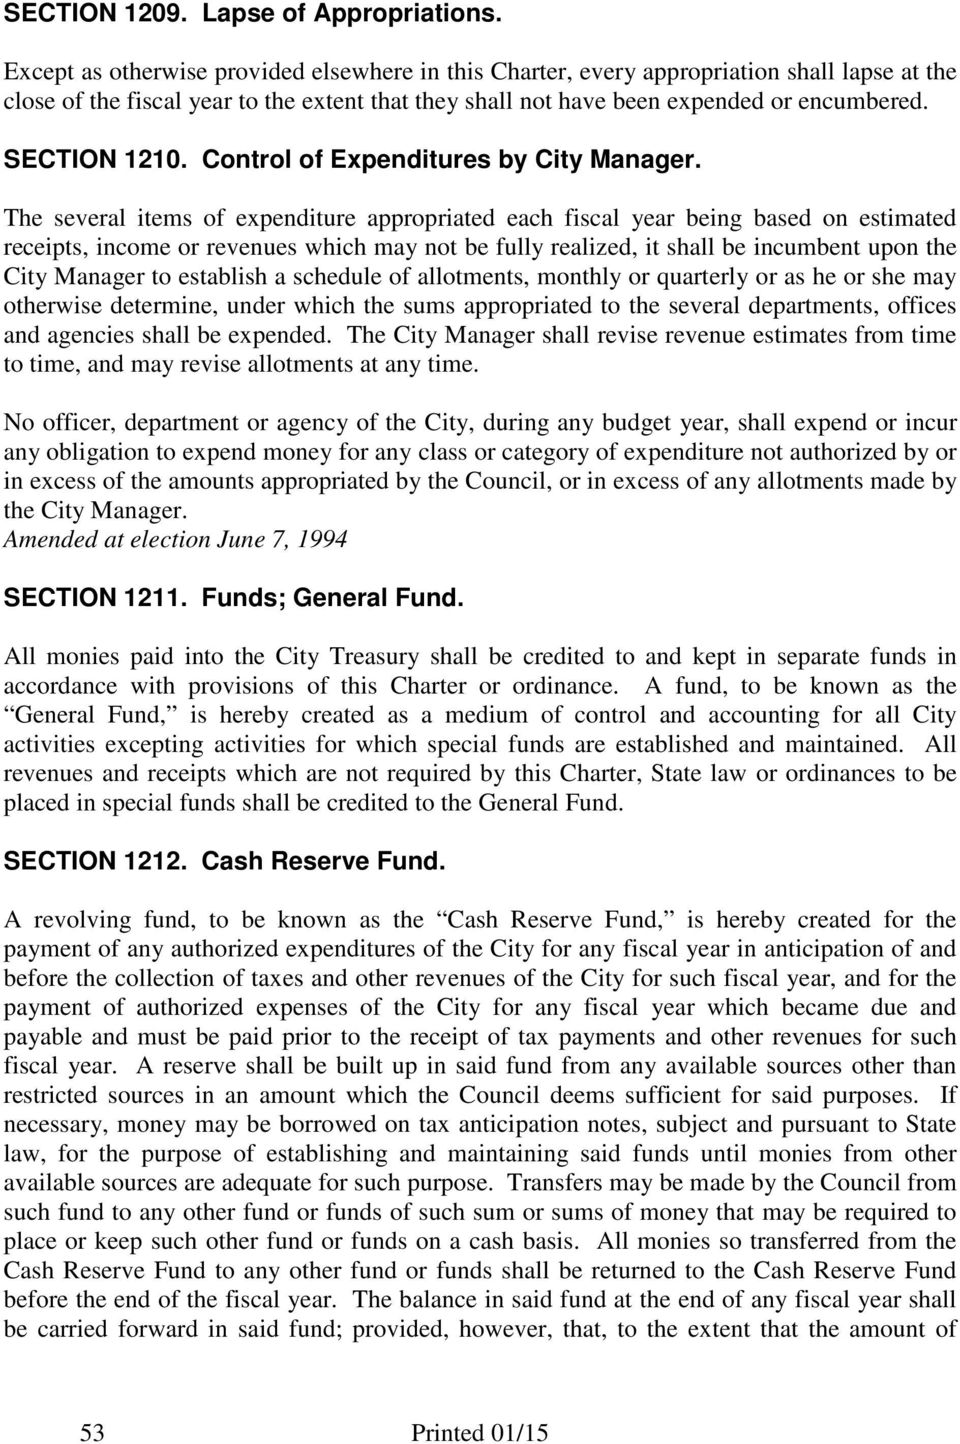 SECTION 1210. Control of Expenditures by City Manager.